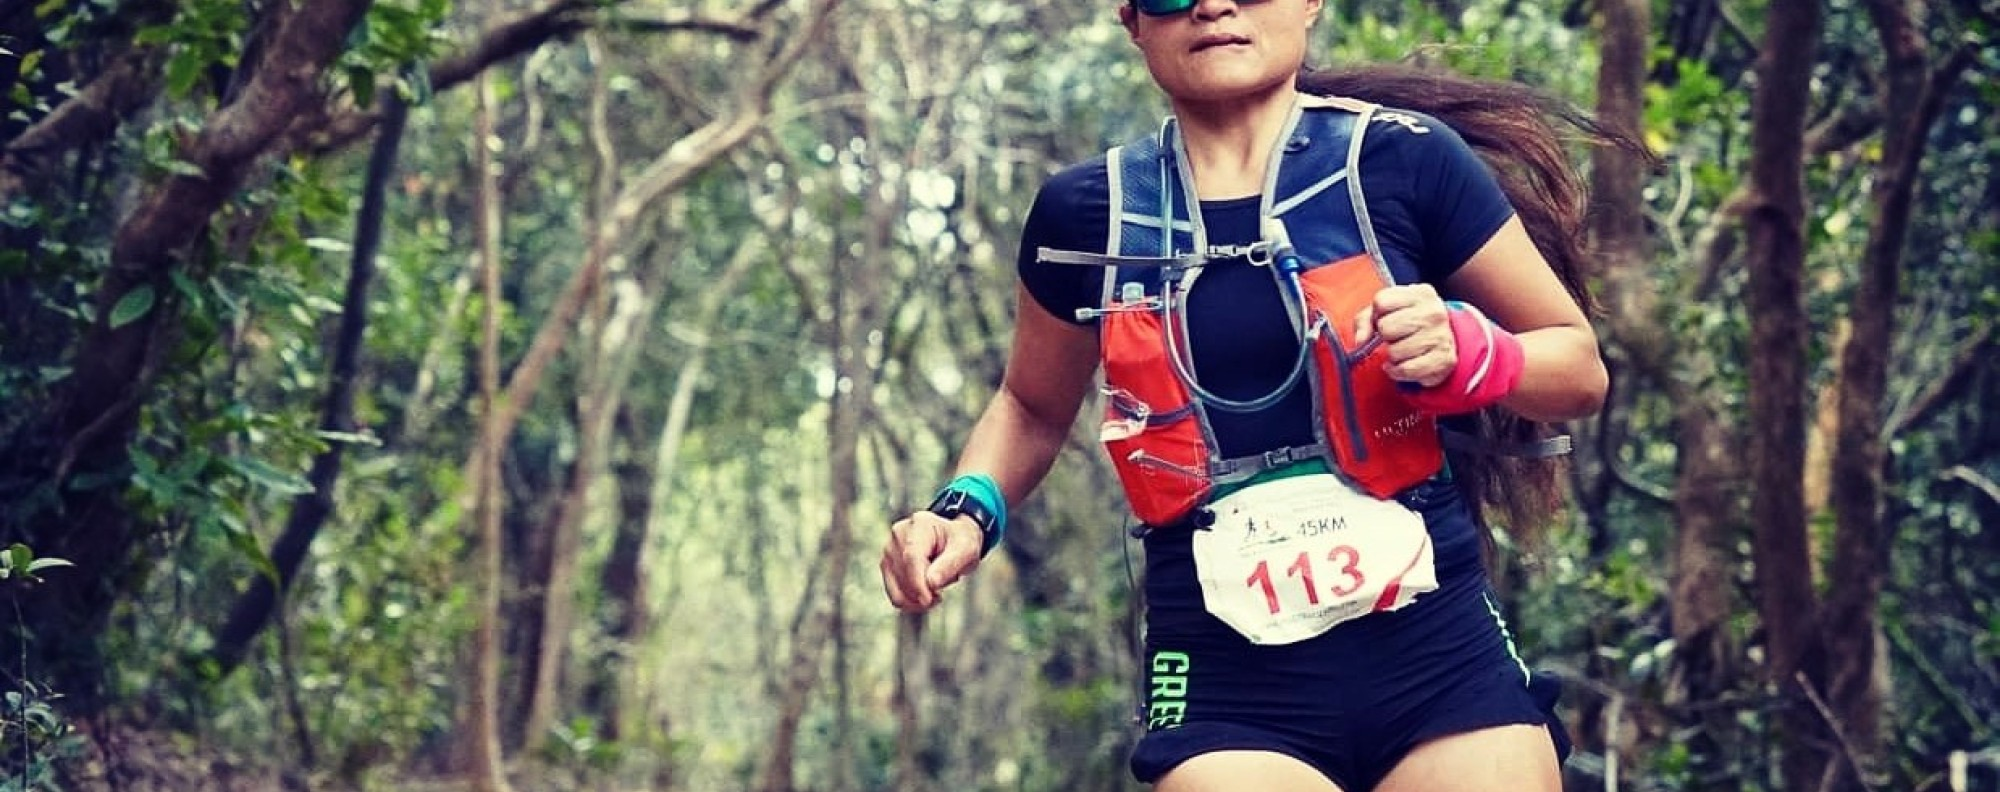 Dolly Vargas Salles running the MSIG Braemar Hill. This weekend, she is running 75km and 45km on consecutive days. Photo: The Green Race